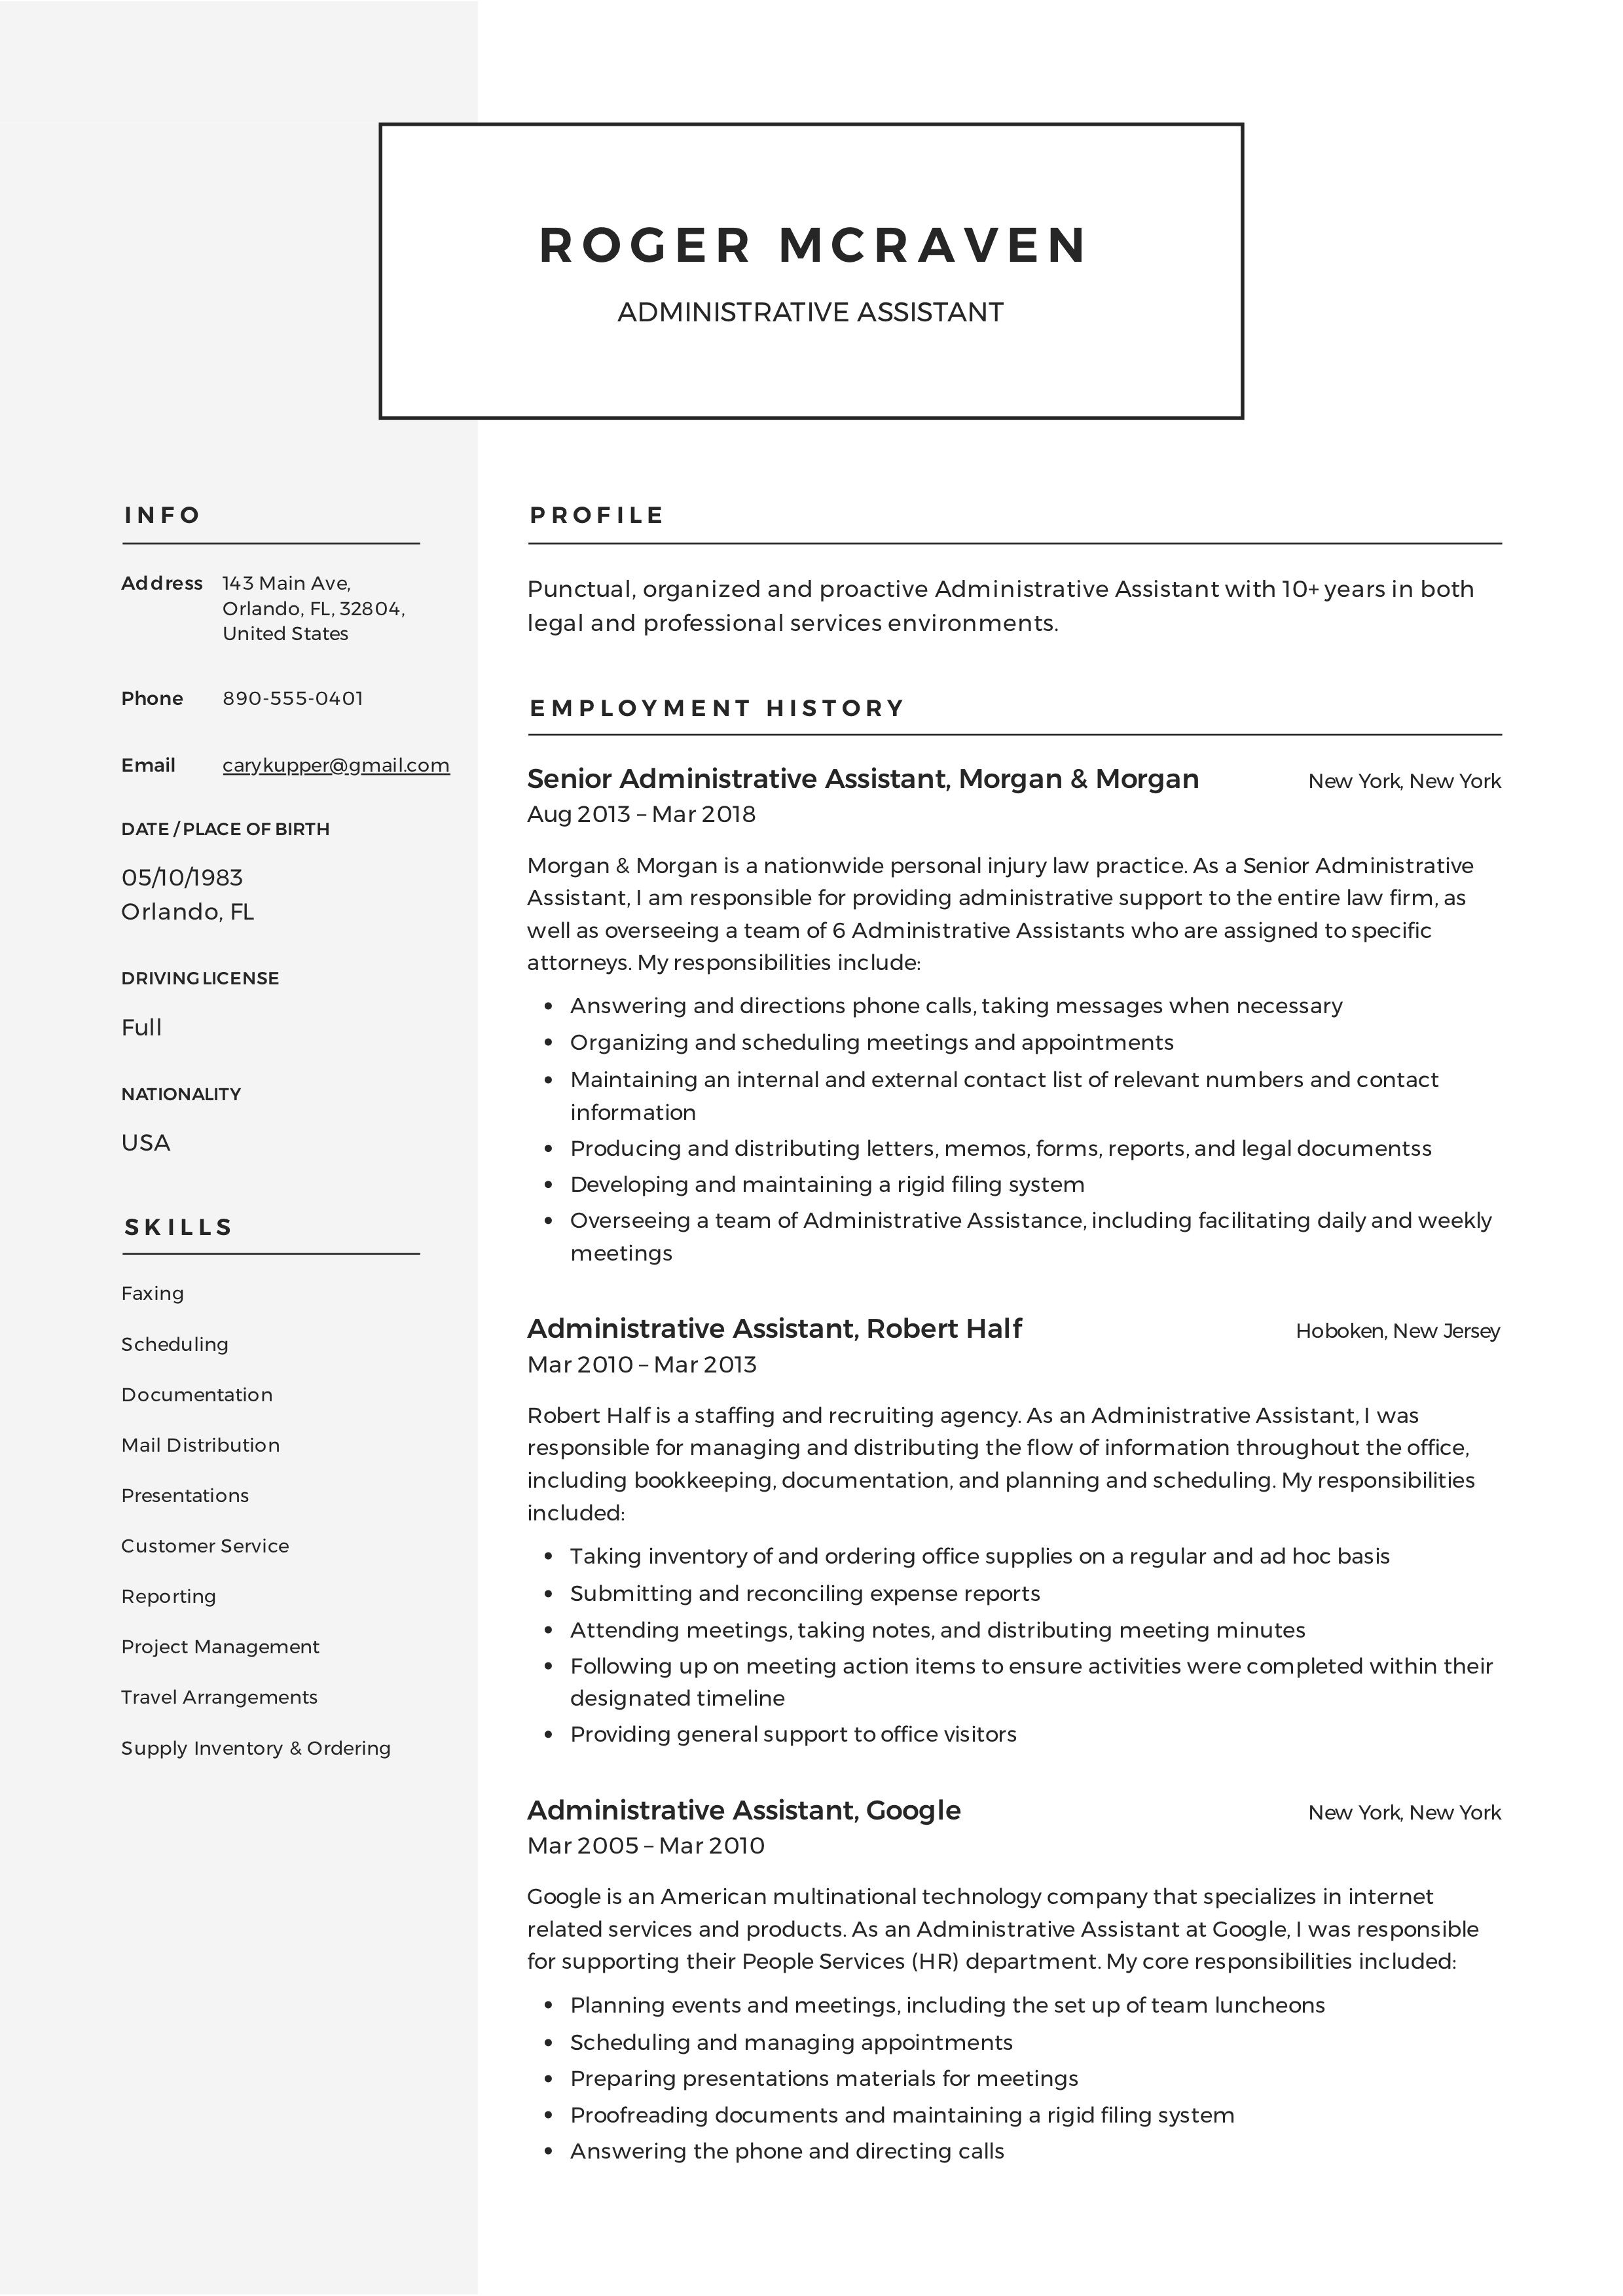 Free Administrative Assistant Resume Sample Template Example Cv Formal Design Administrative Assistant Resume Event Planner Resume Office Manager Resume